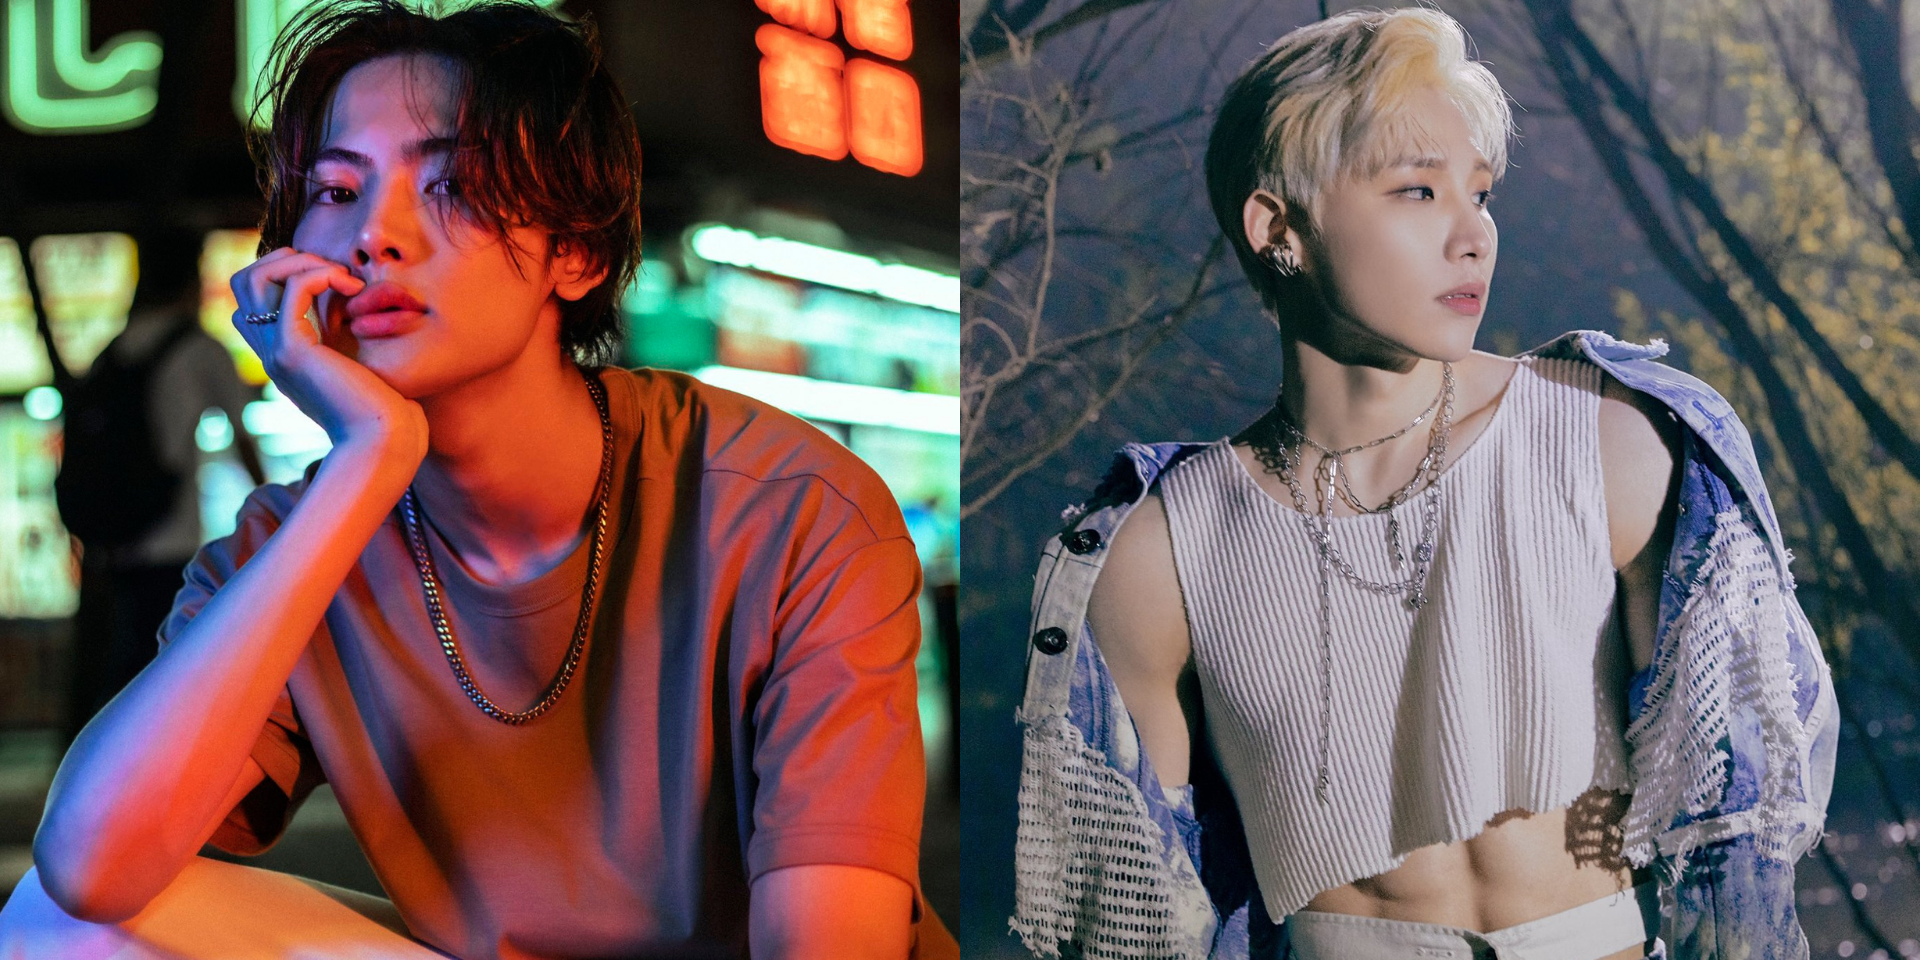 NOA drops new single 'LET GO' with AB6IX's Jeon Woong – watch